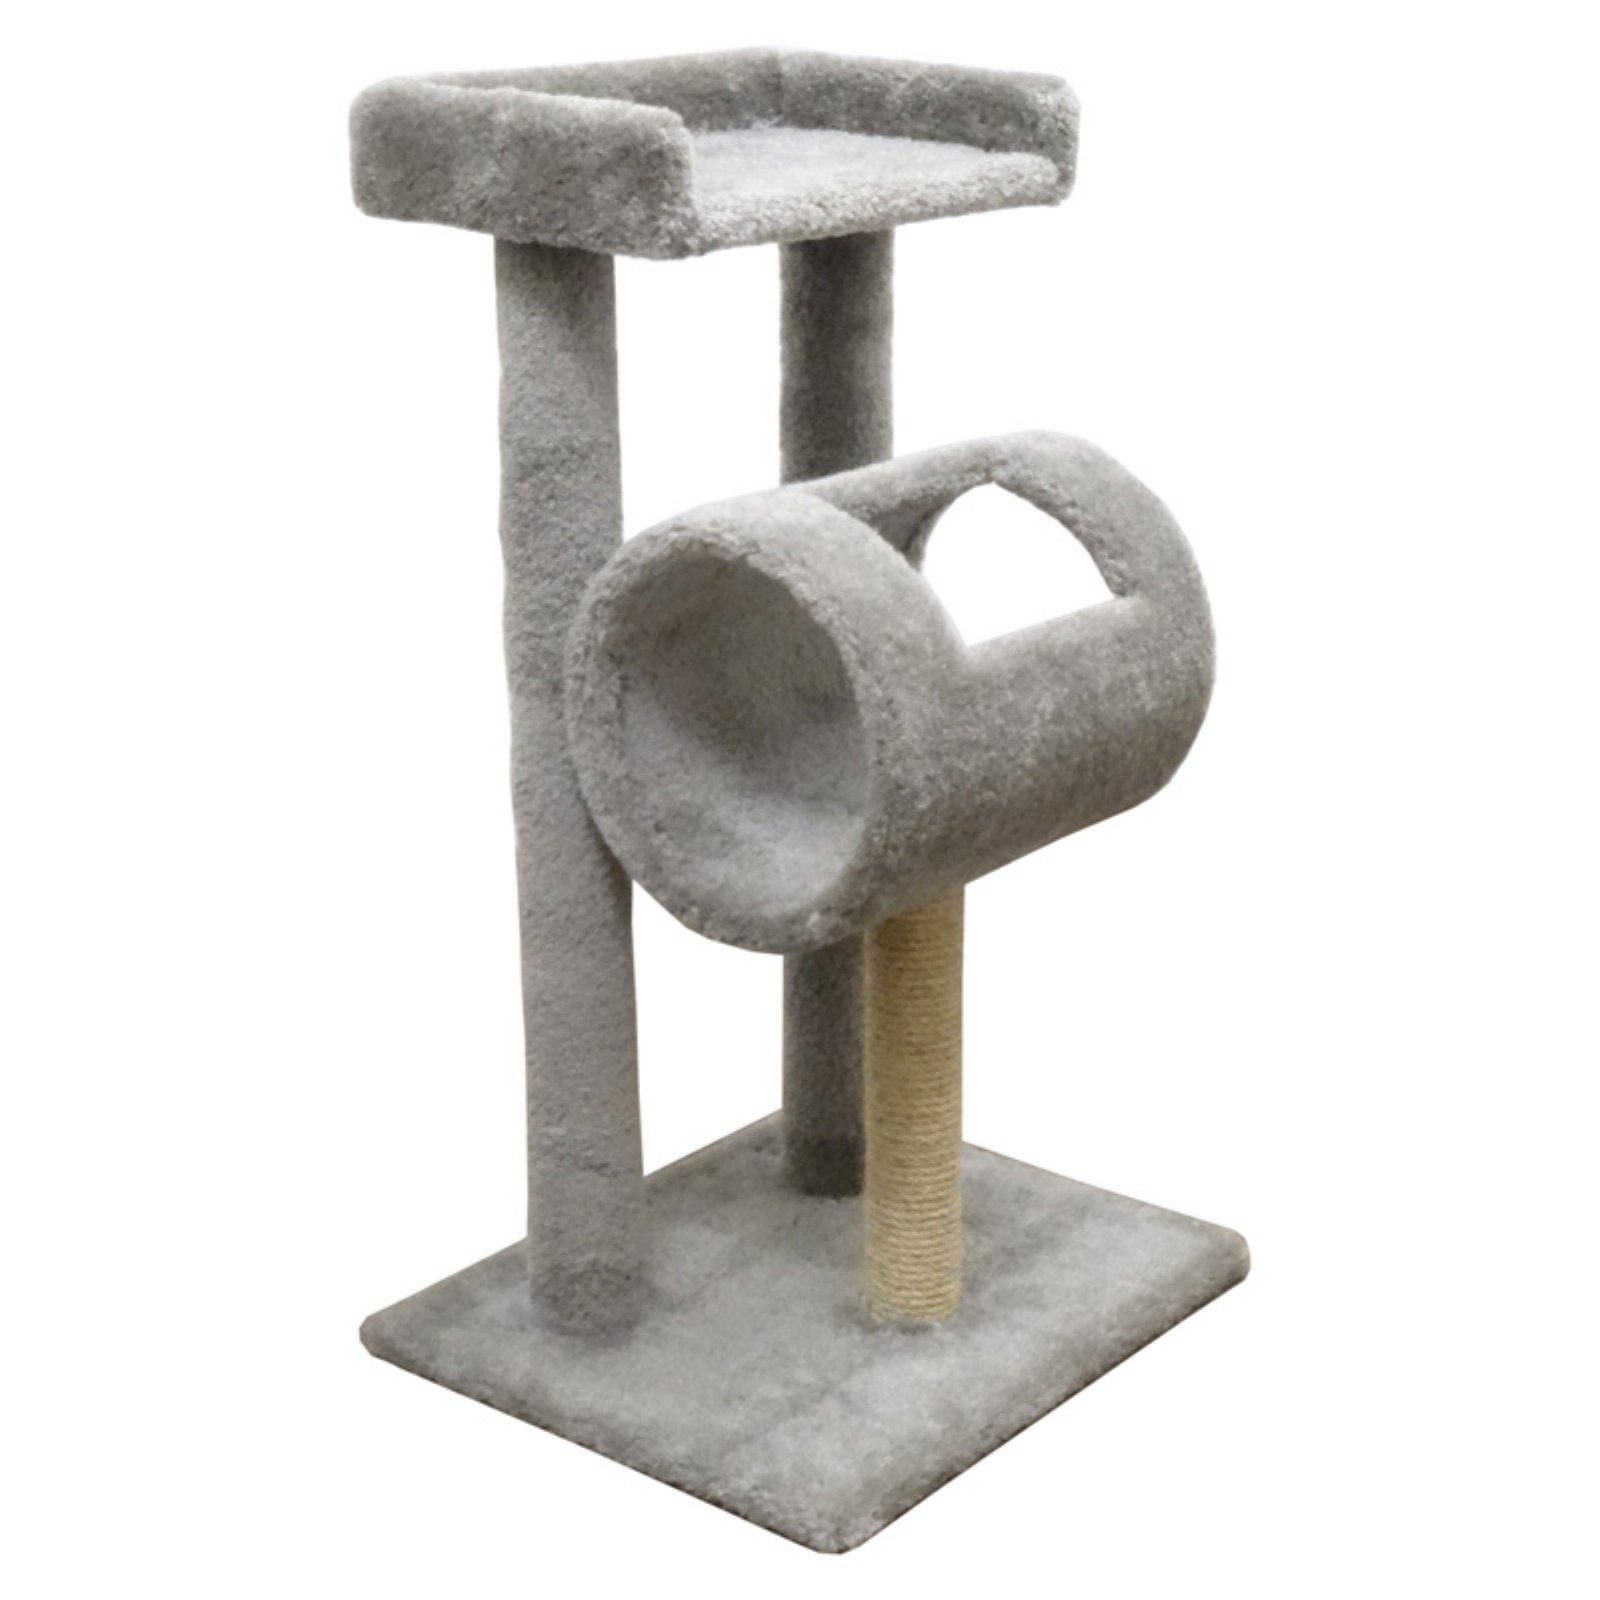 New Cat Condos Premiere 44 in. Cat Climber Cat Tree